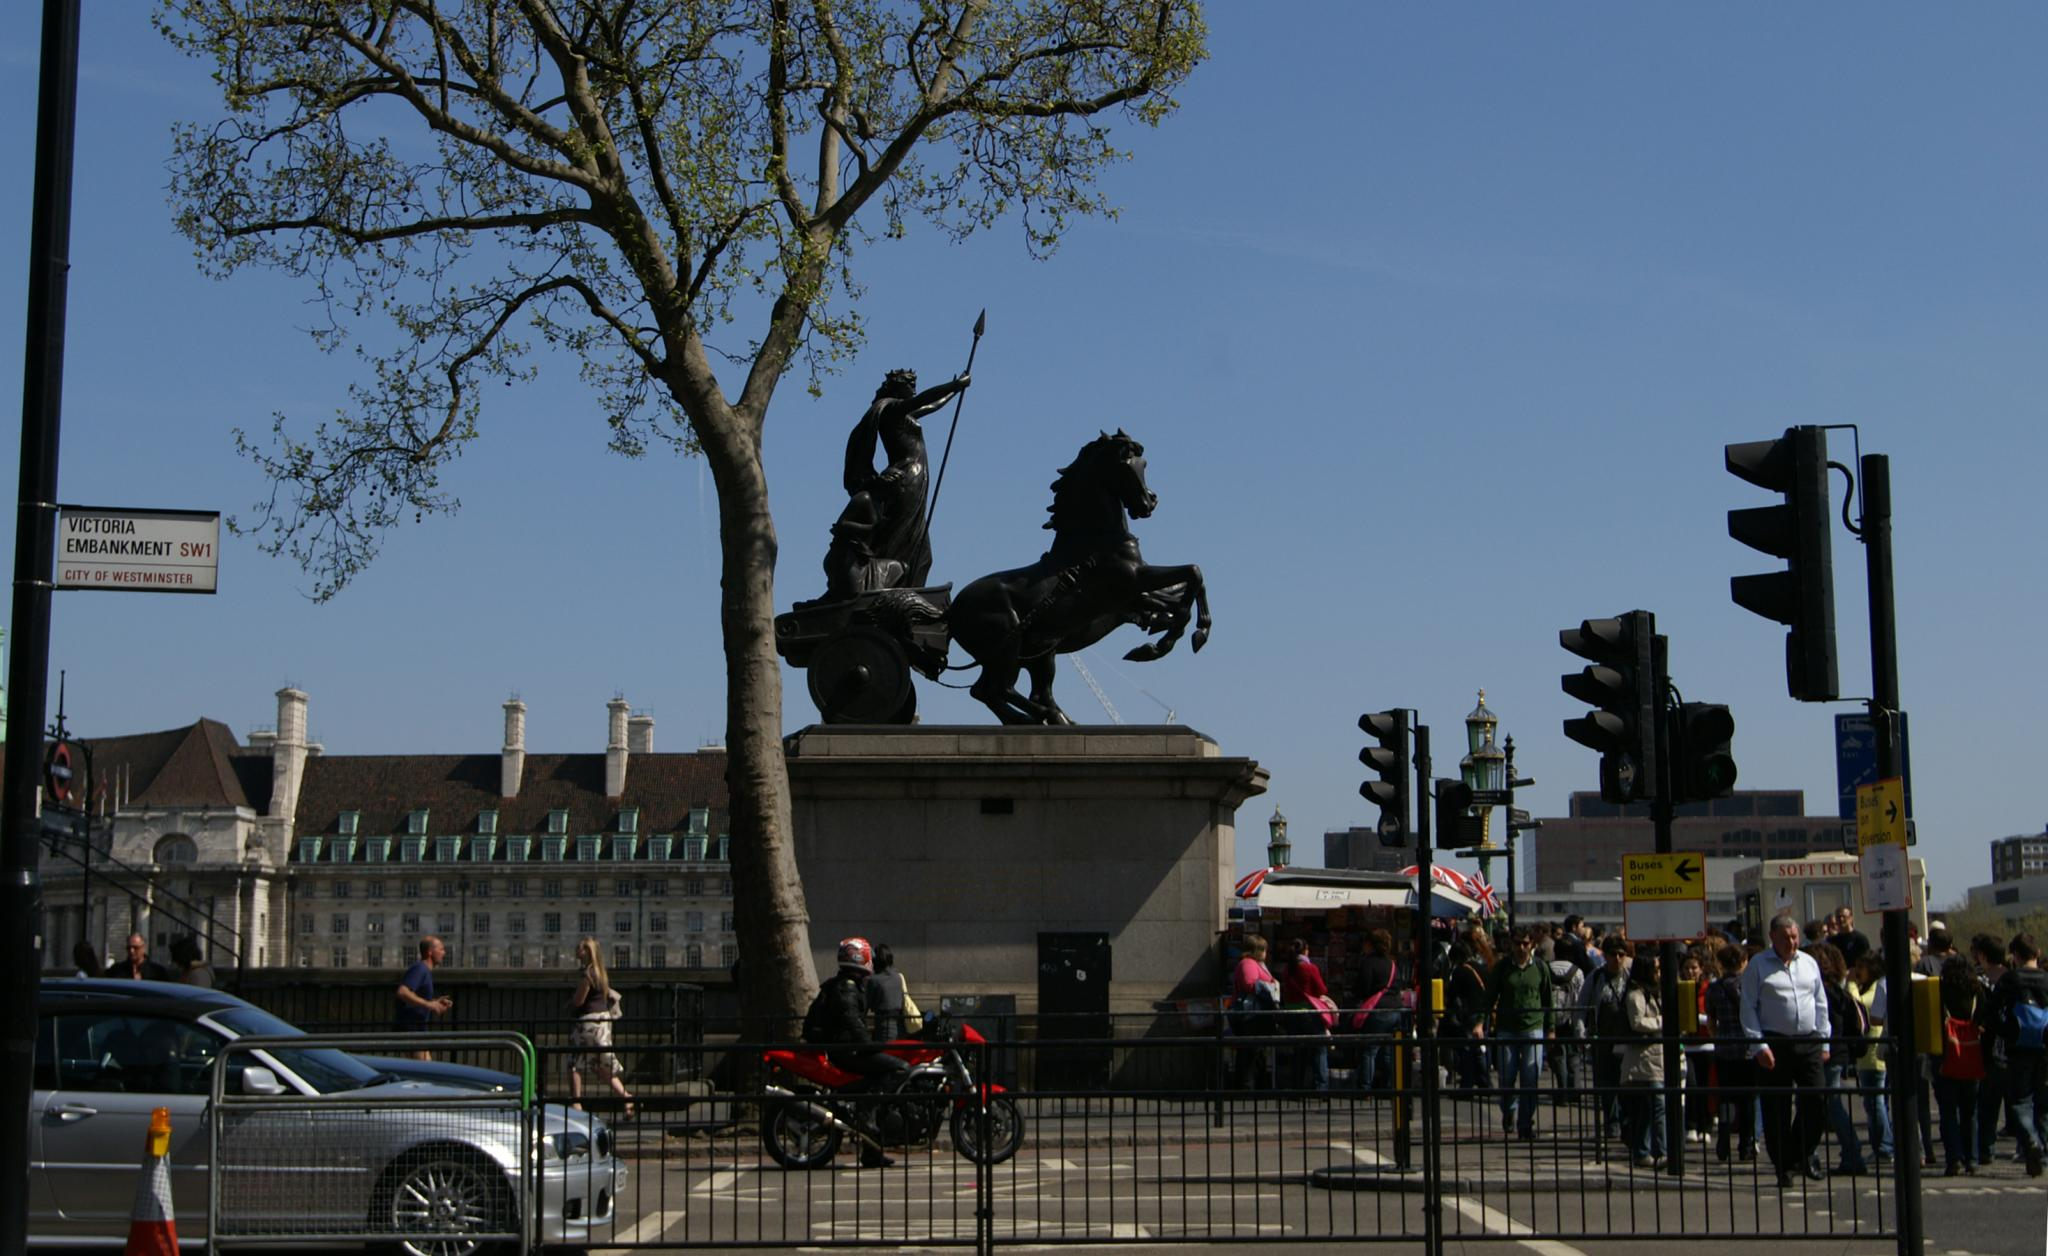 http://upload.wikimedia.org/wikipedia/commons/e/e6/Statue_of_Boudicca.jpg